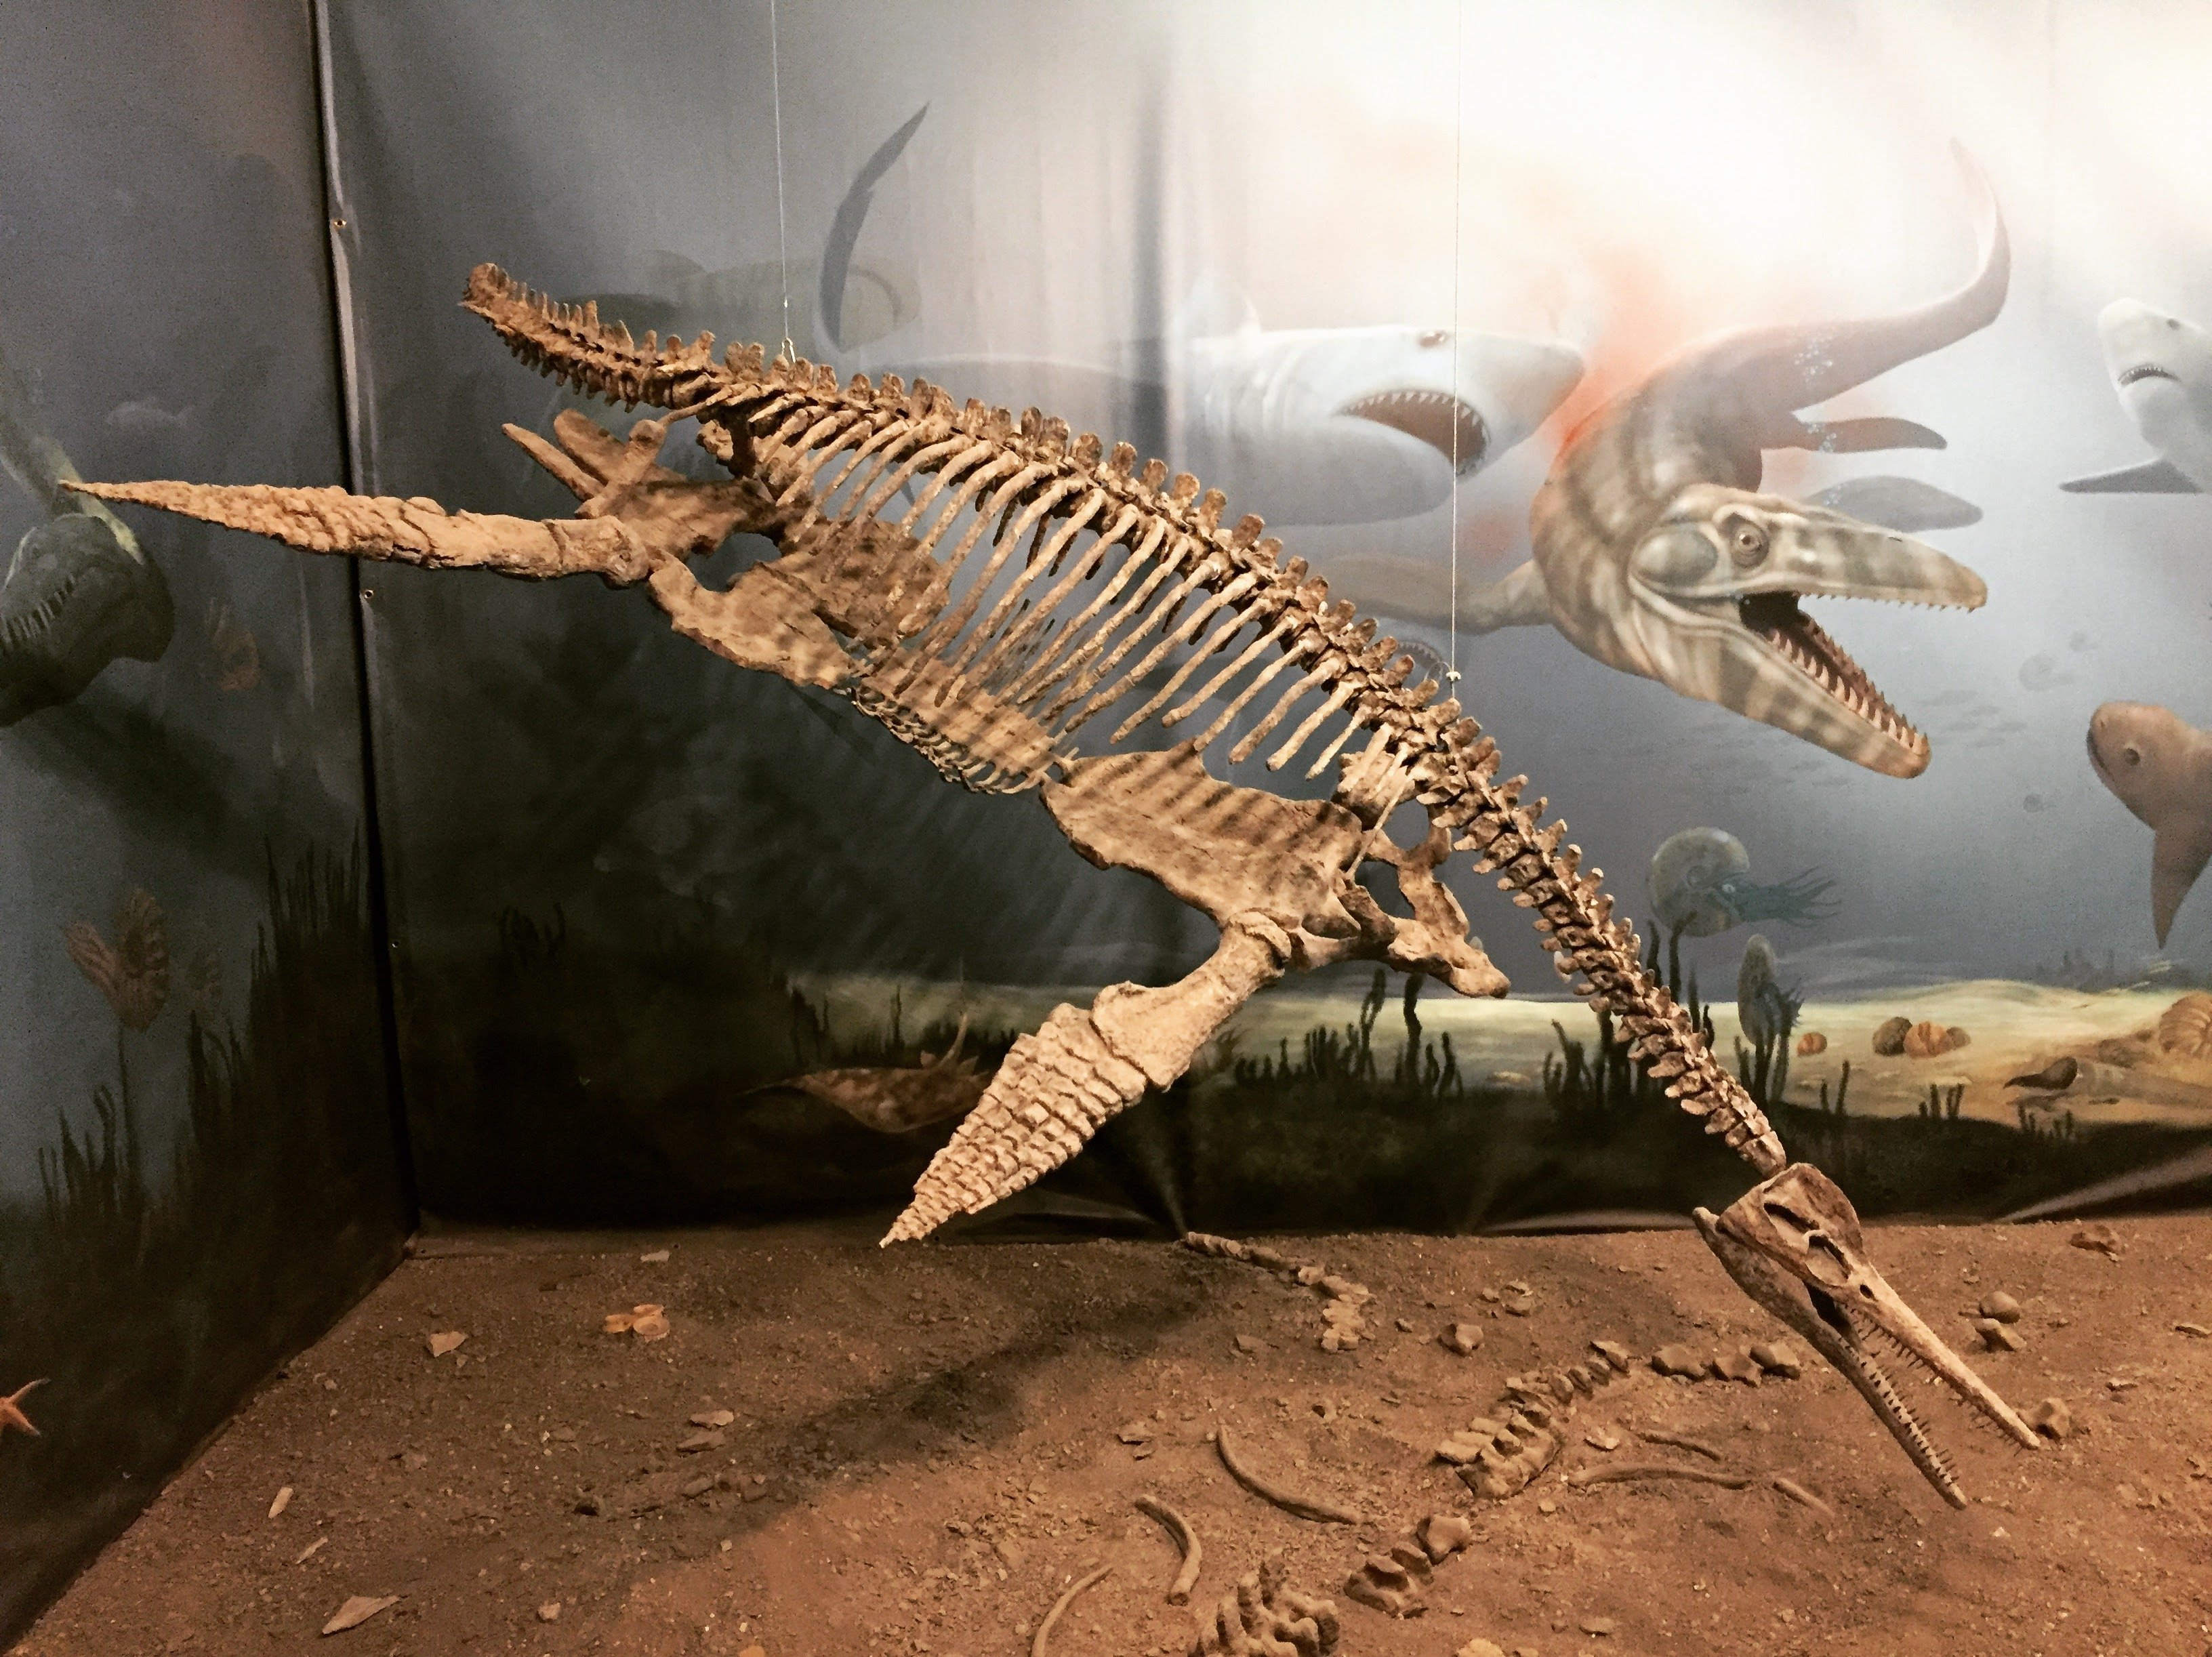 CLOSED DUE TO CORONAVIRUS! Fossil Museum Admission for FREE during March to Morden Residents